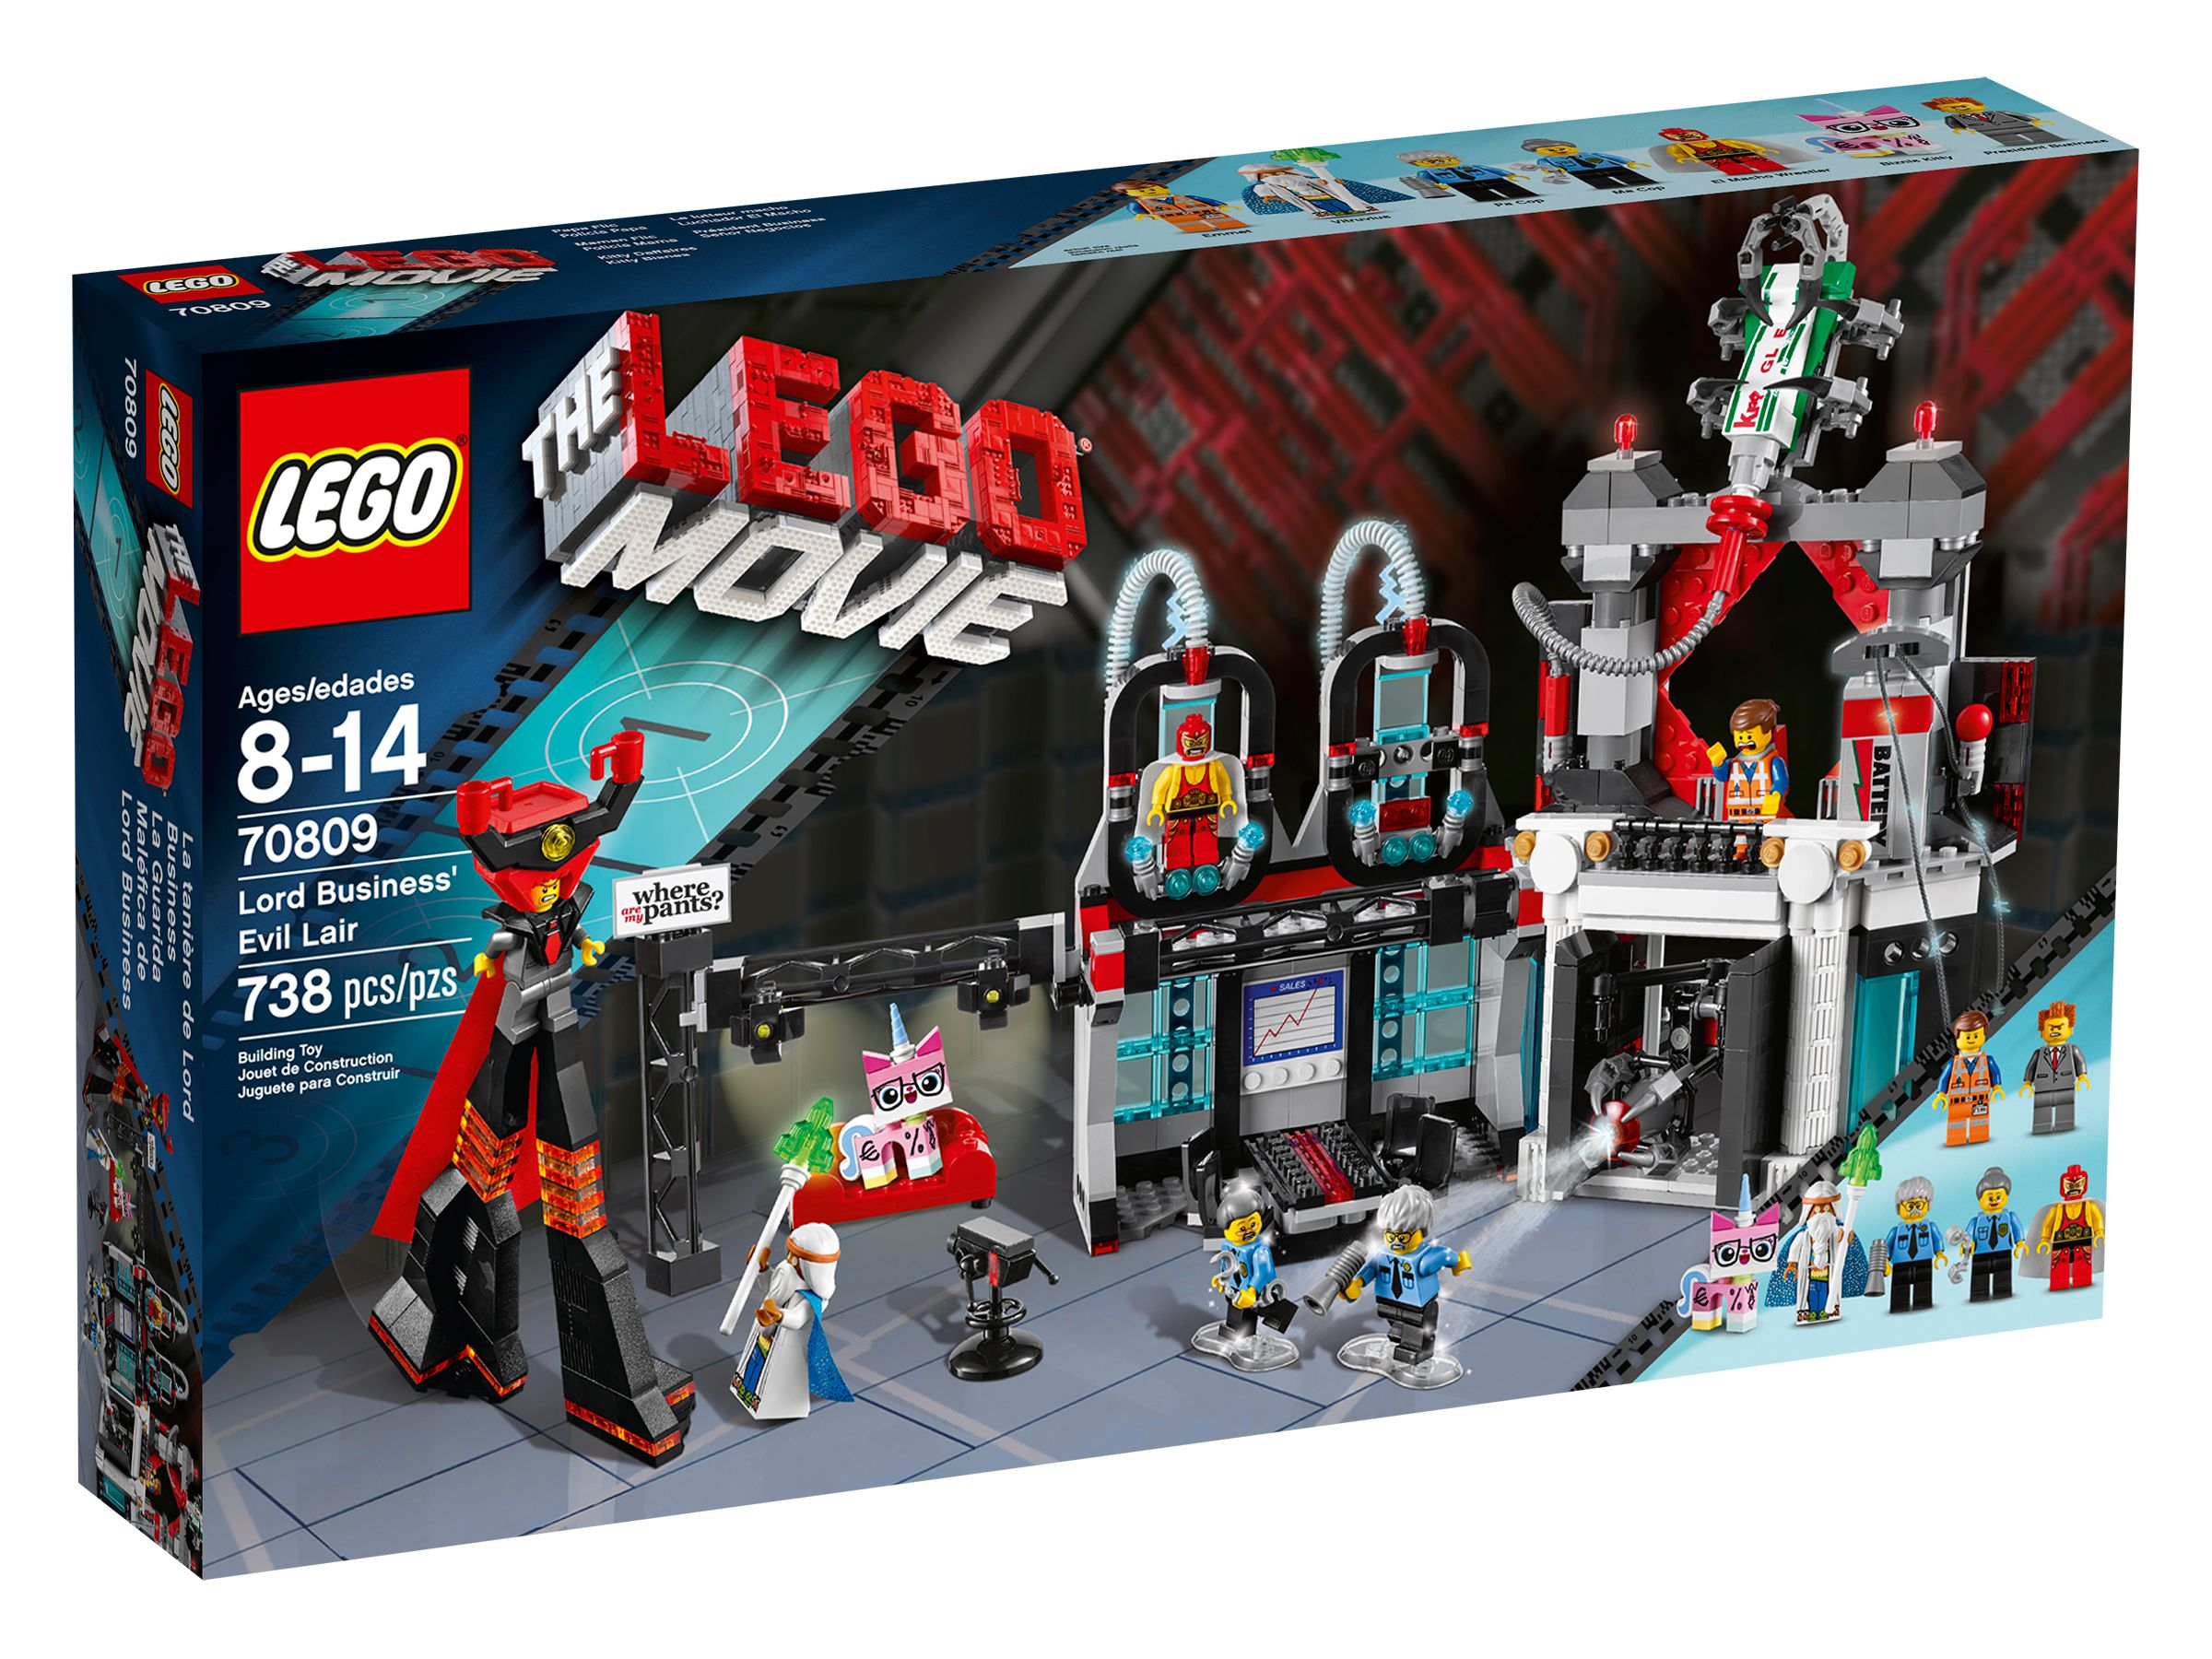 LEGO The LEGO Movie 70809 Lord Business' Hauptzentrale LEGO_70809_alt1.jpg